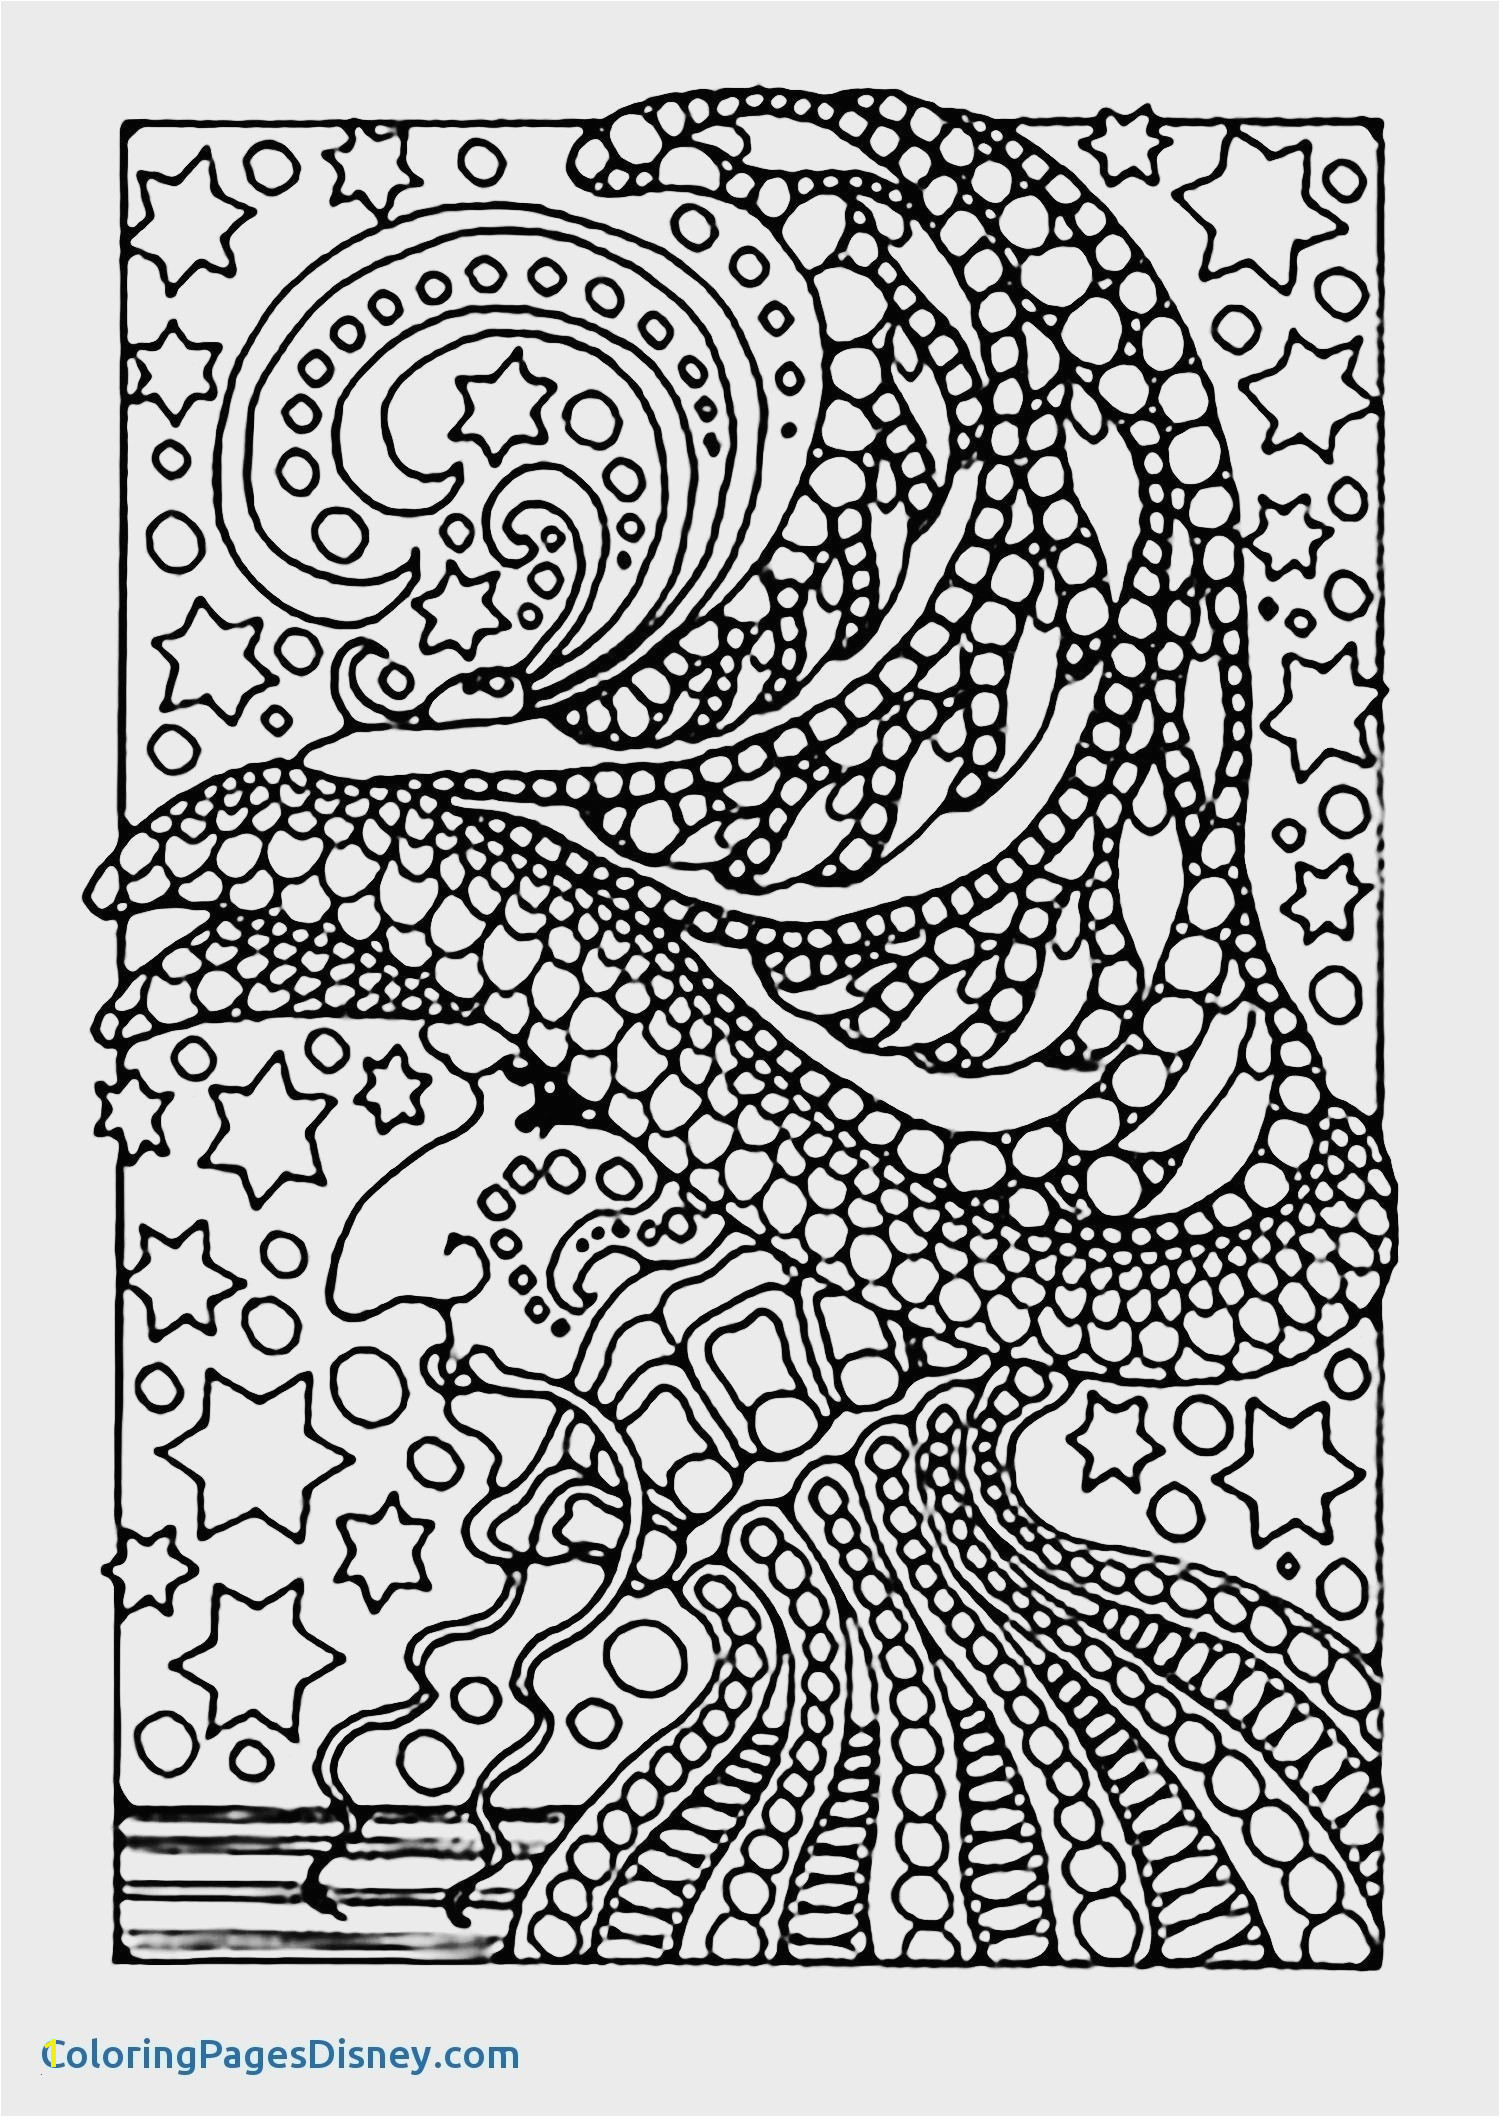 plex Coloring Pages Free Printable Plex Coloring Books 21csb plex Coloring Pages Amazing Advantages Coloring